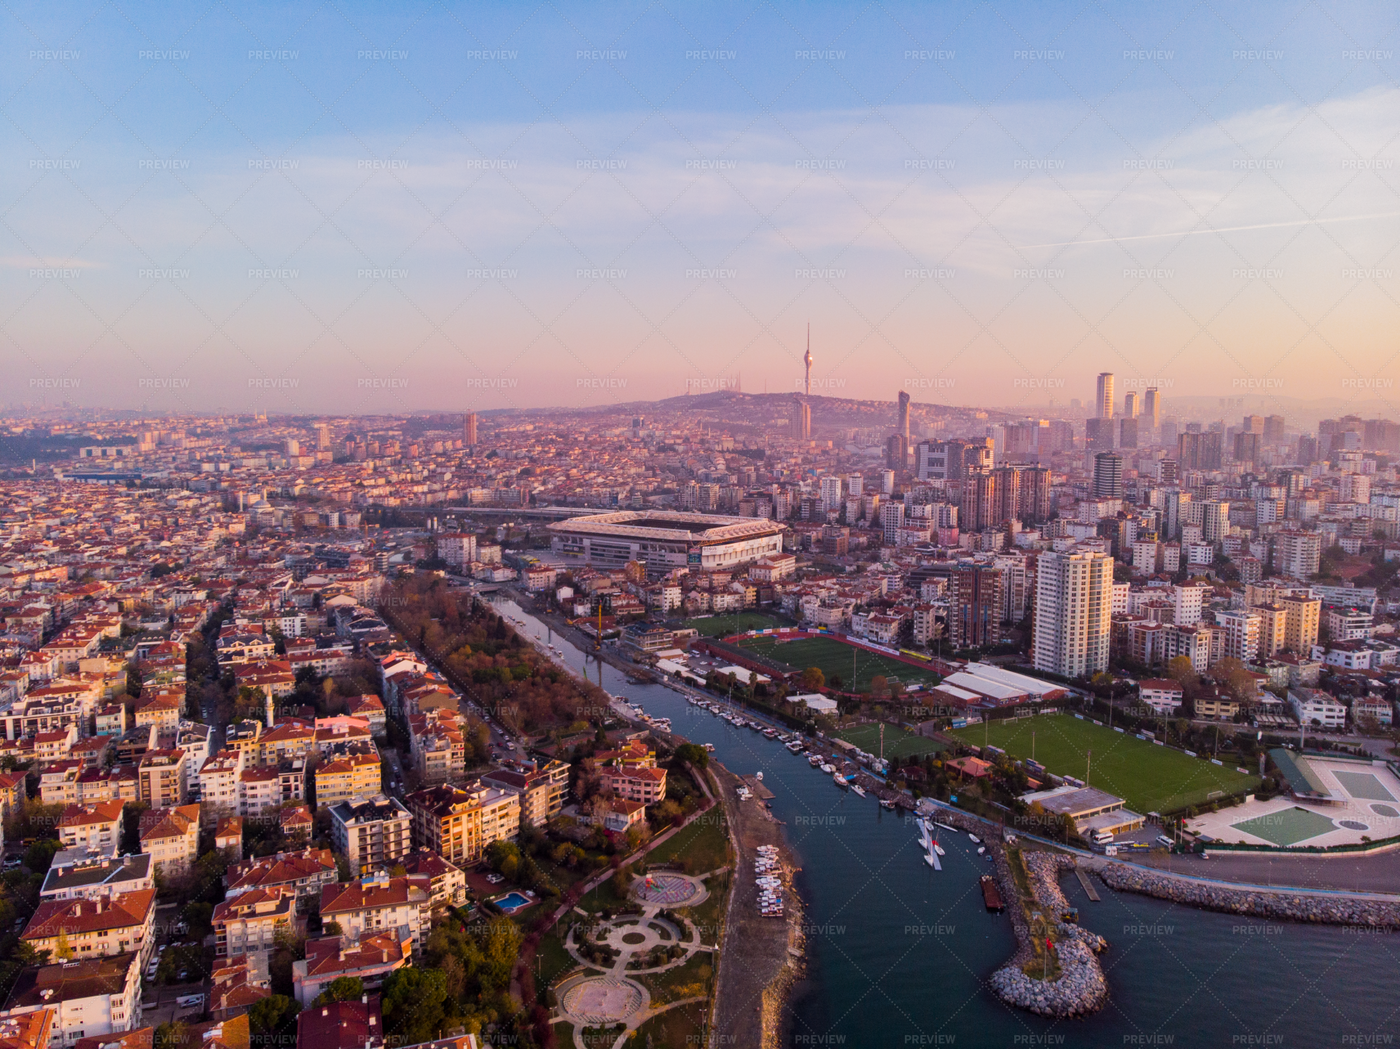 Aerial View Of A City And Stadium: Stock Photos